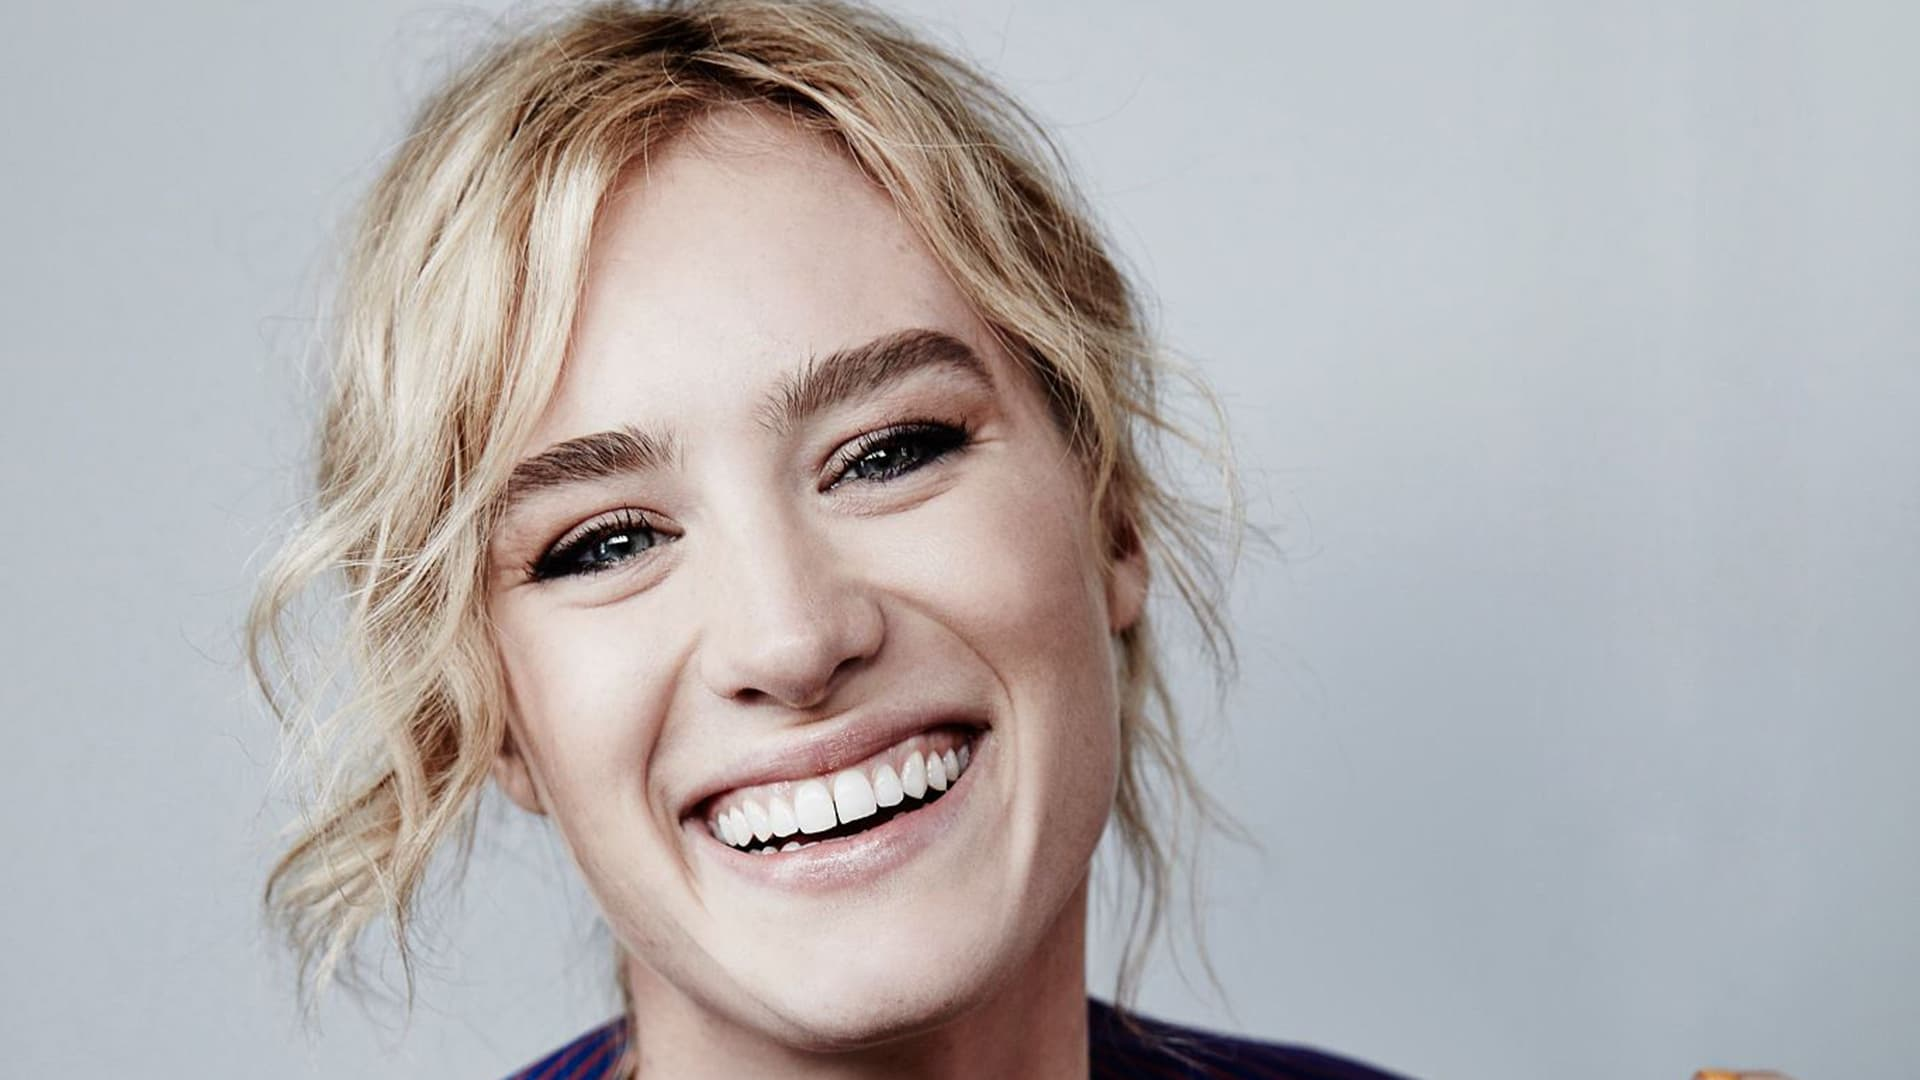 mackenzie davis smile wallpaper 57684